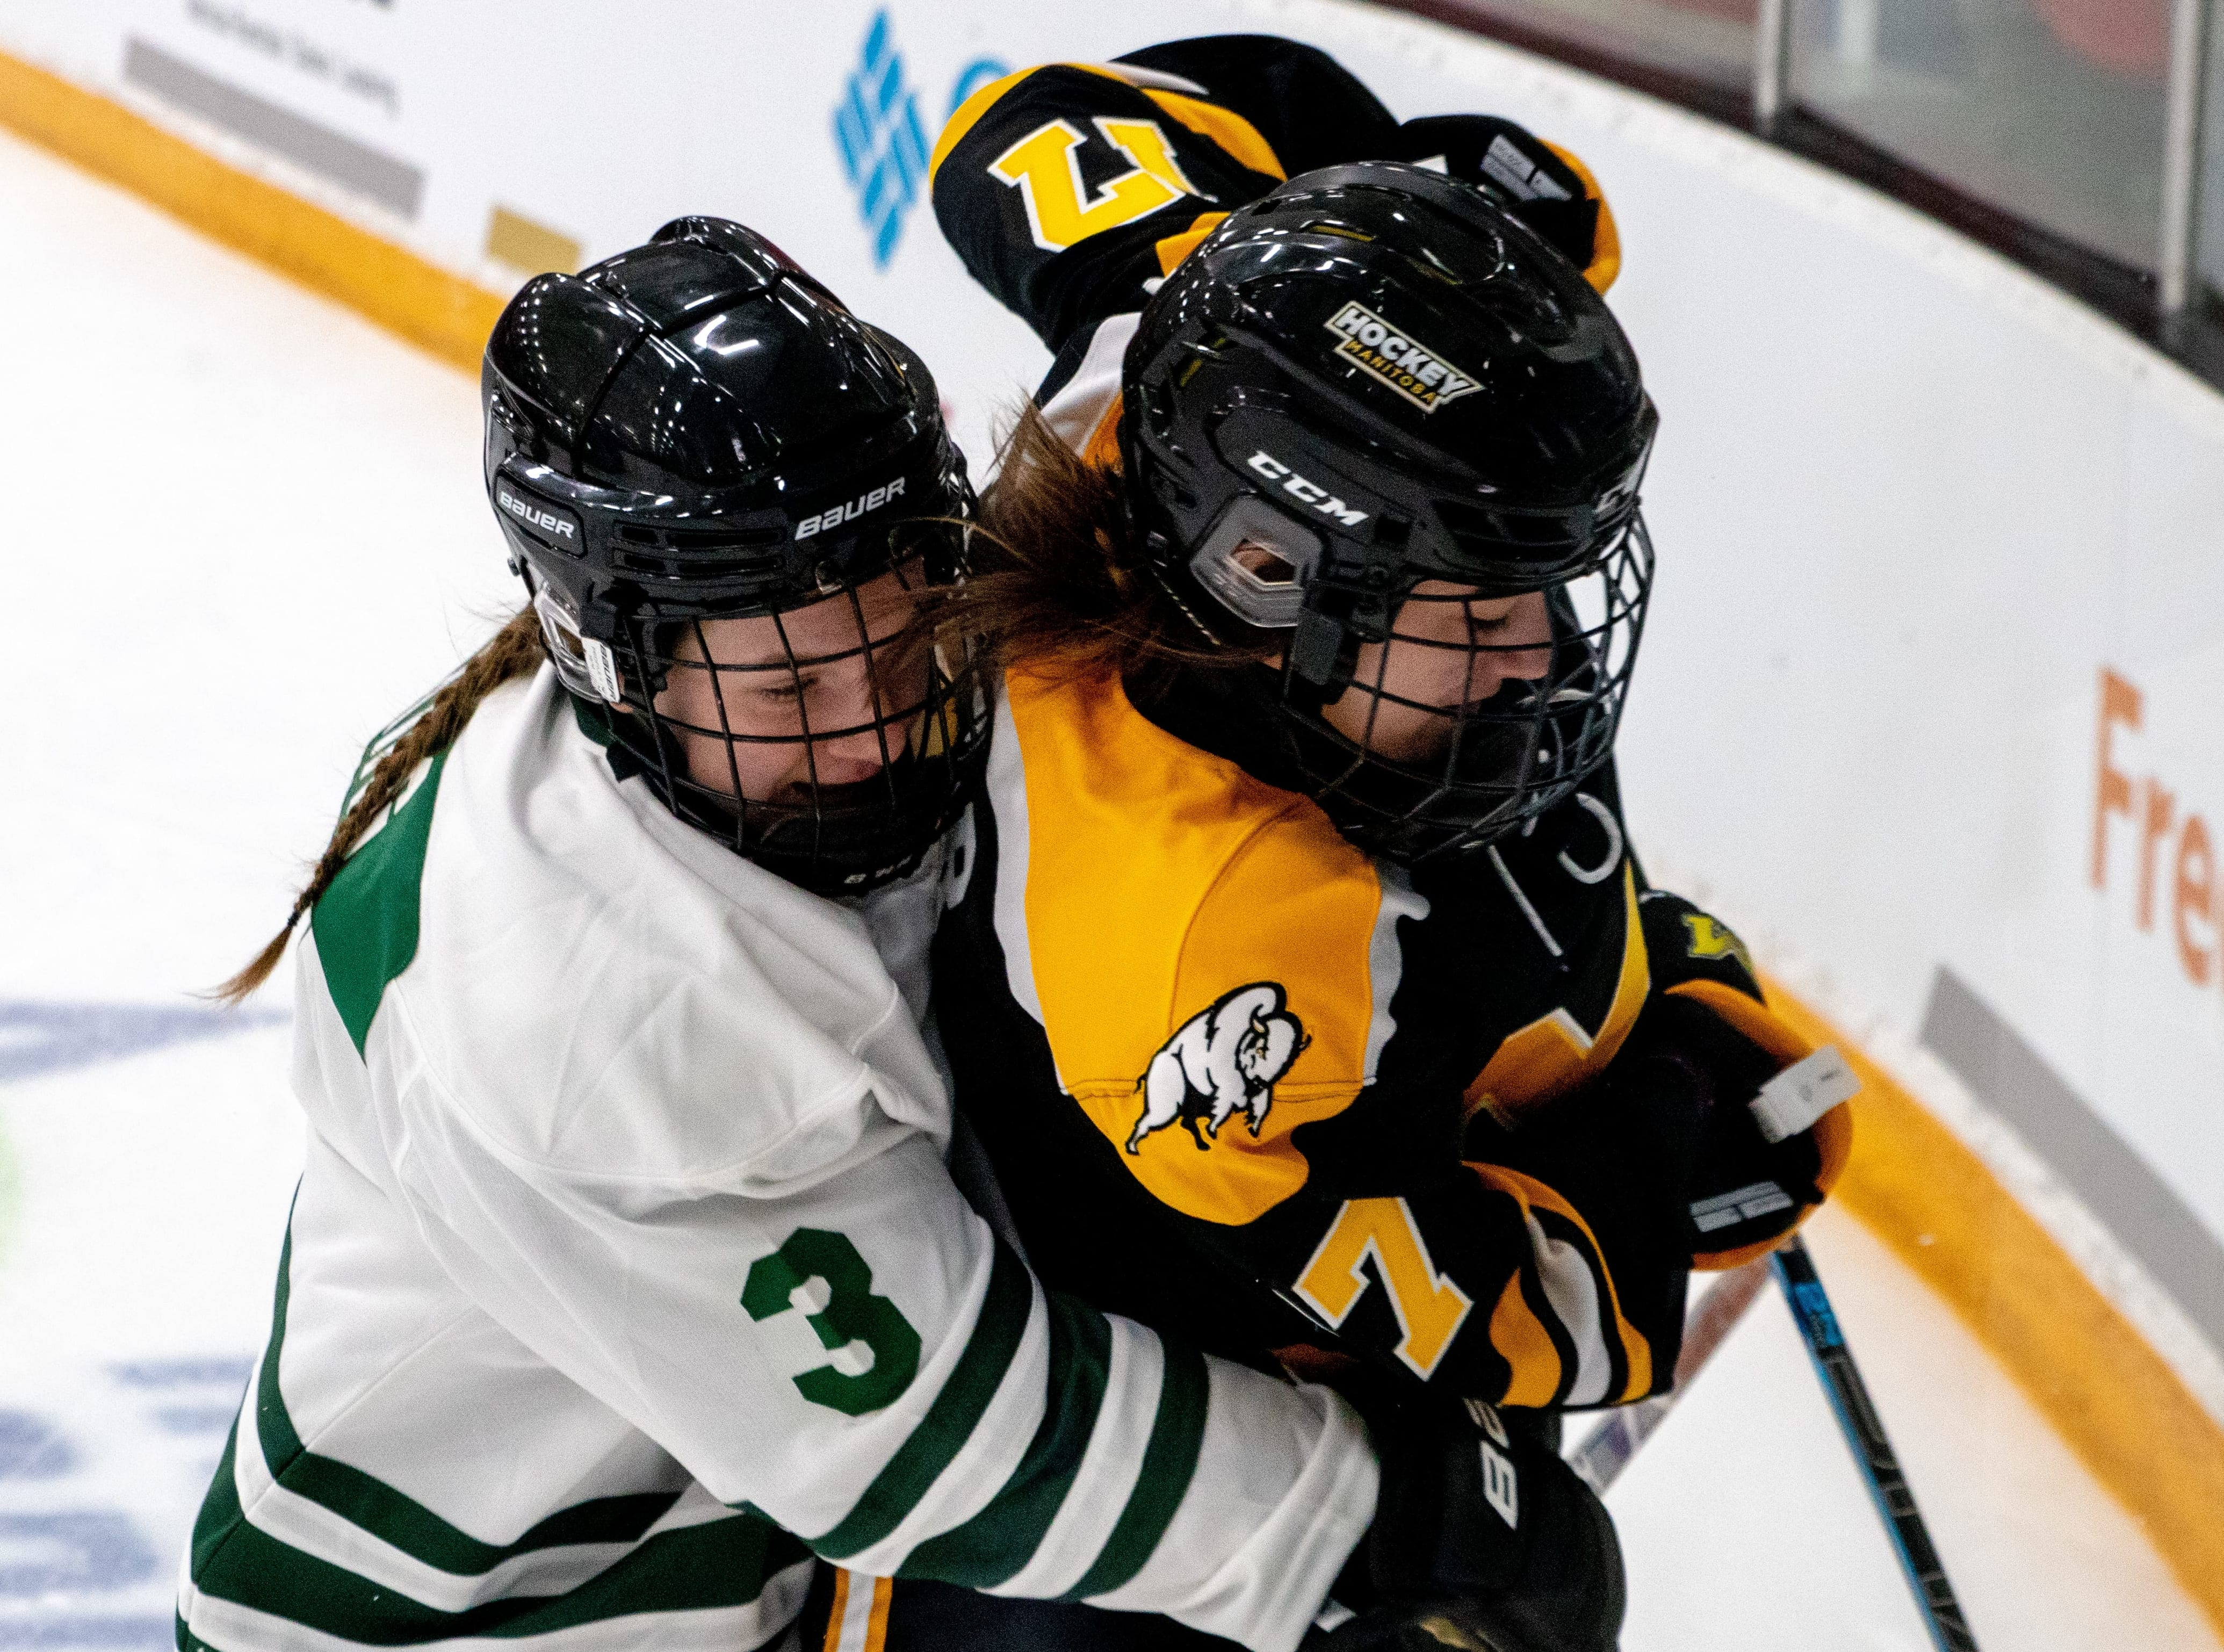 Annie King, formerly of Yellowknife and now playing in Saskatchewan, puts a Manitoba player in a bear hug during girls hockey action at the Canada Winter Games earlier this year. King will get the chance to wear the maple leaf as a member of Team Canada at the U-18 Women's World Hockey Championship in Slovakia next month after being named to the roster on Monday. Janine Johnsey/Canada Winter Games photo